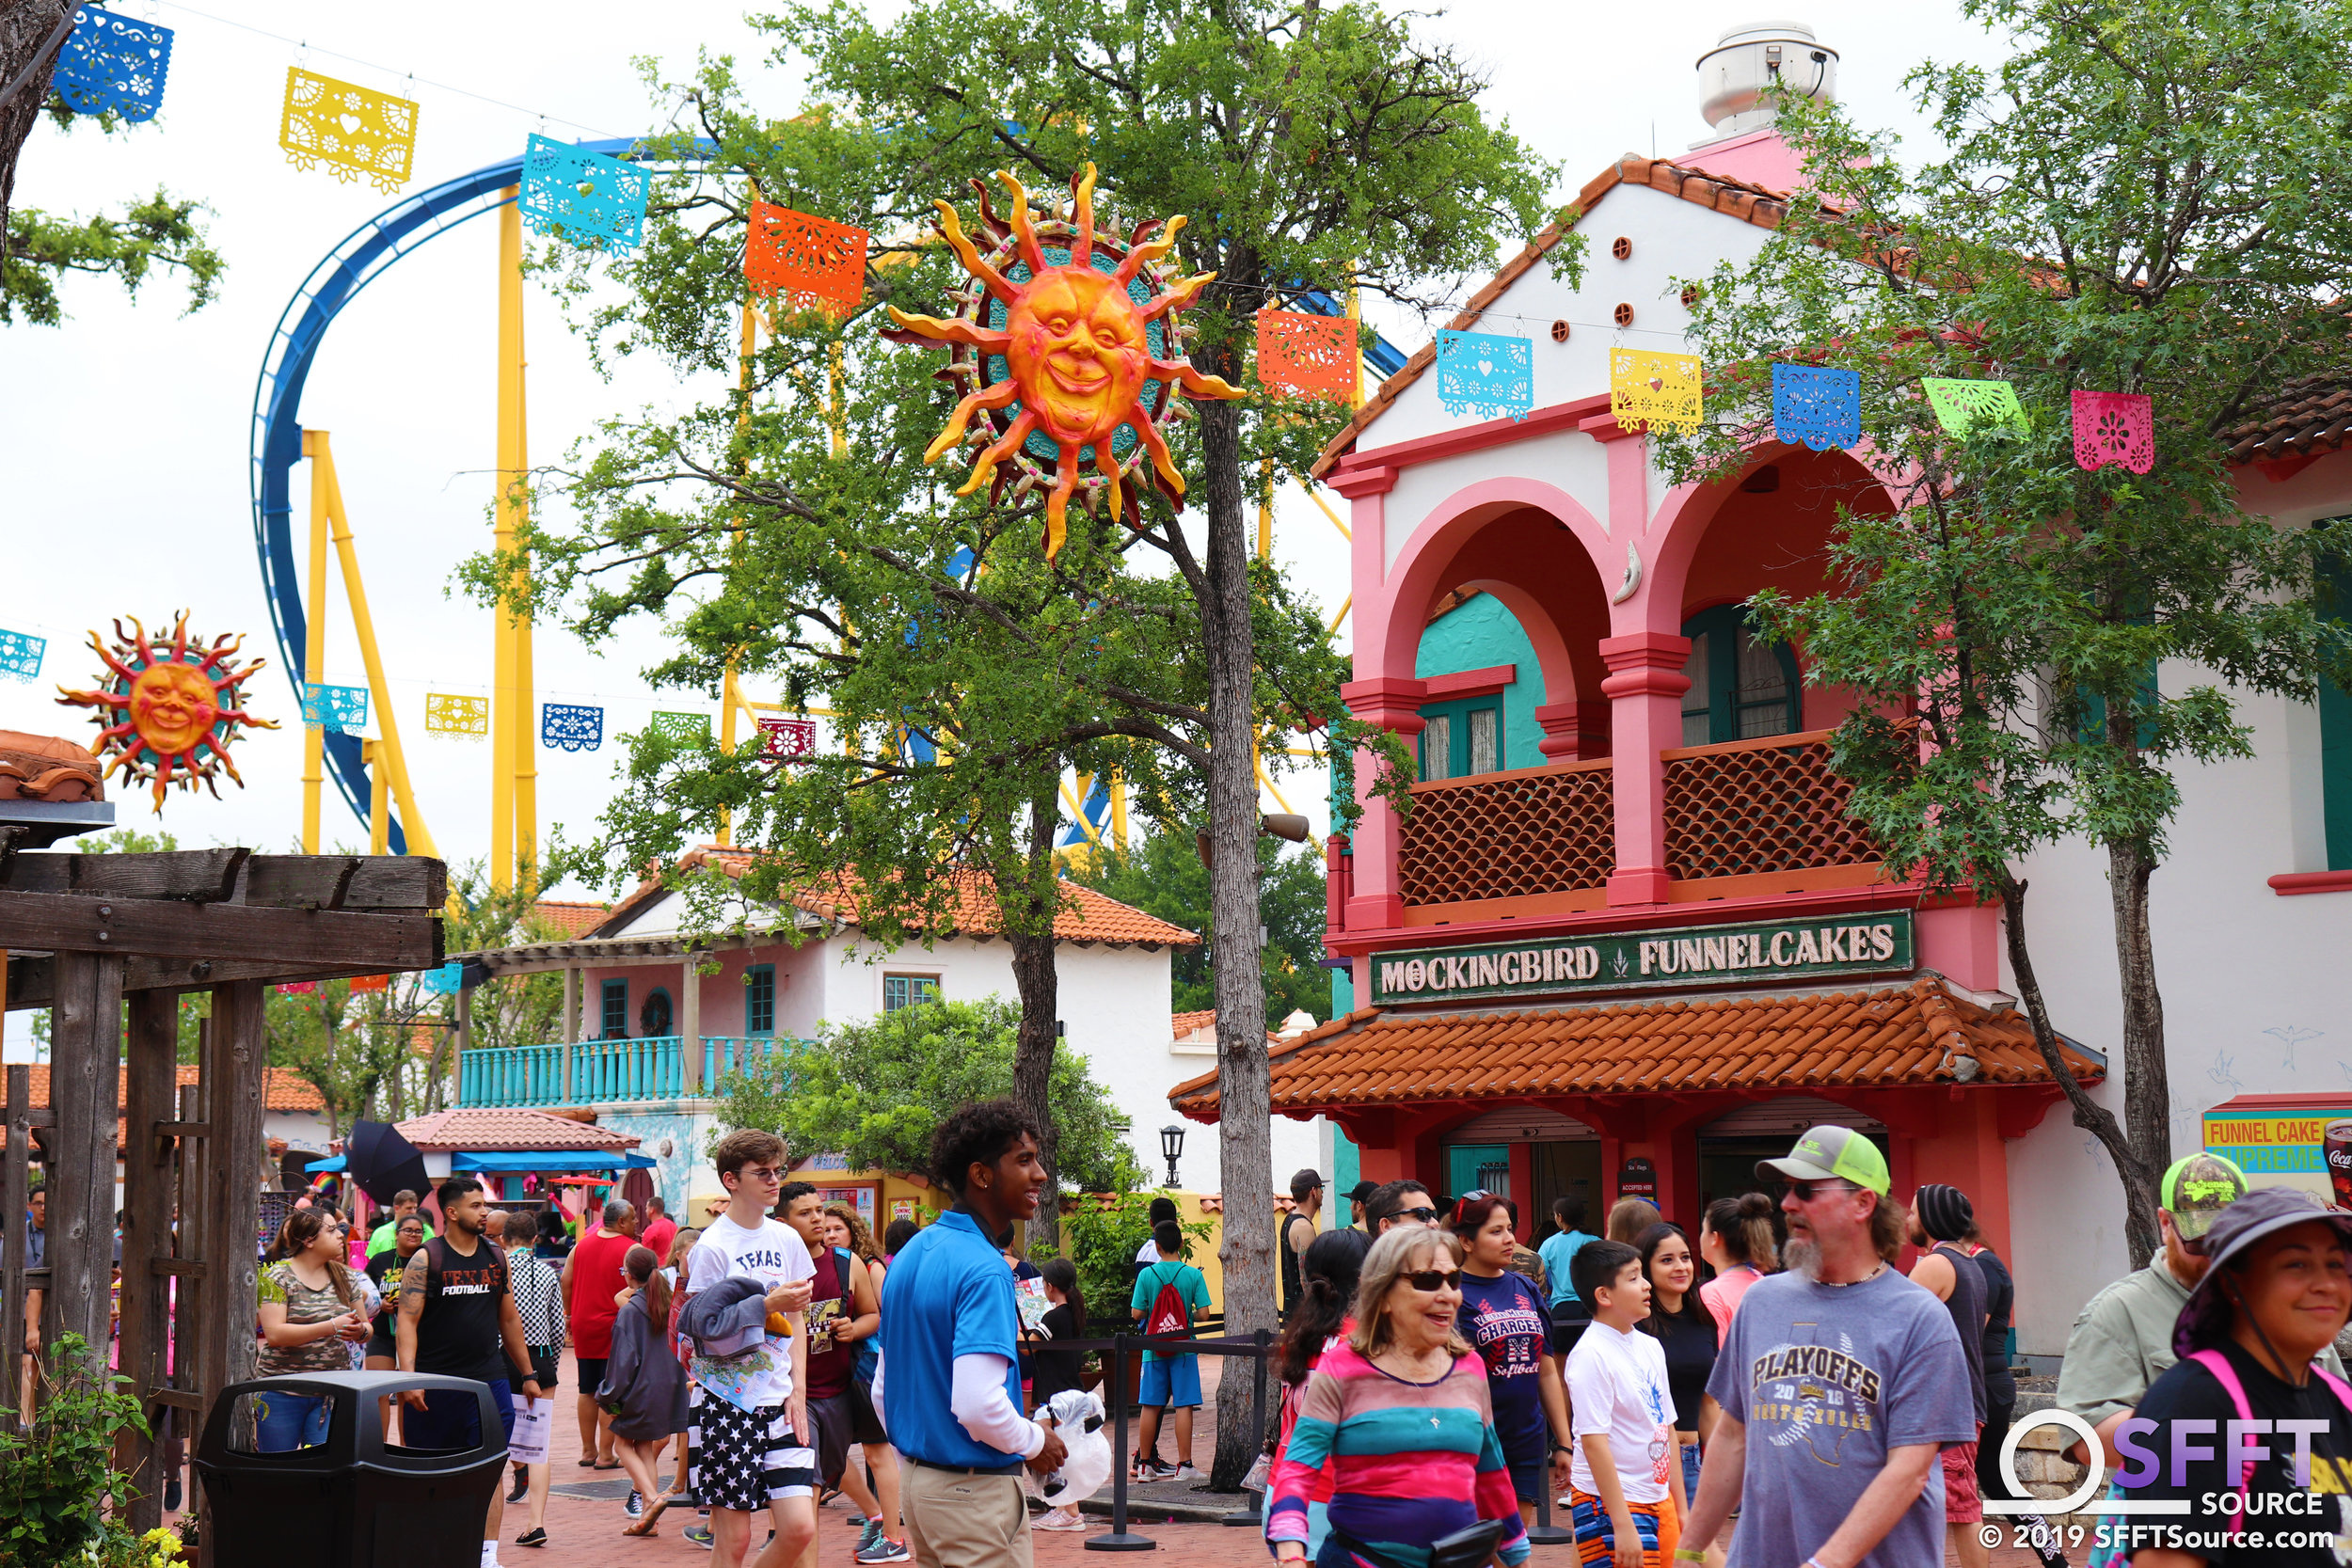 During summer, Los Festivales is decorated with festive suns and banners.